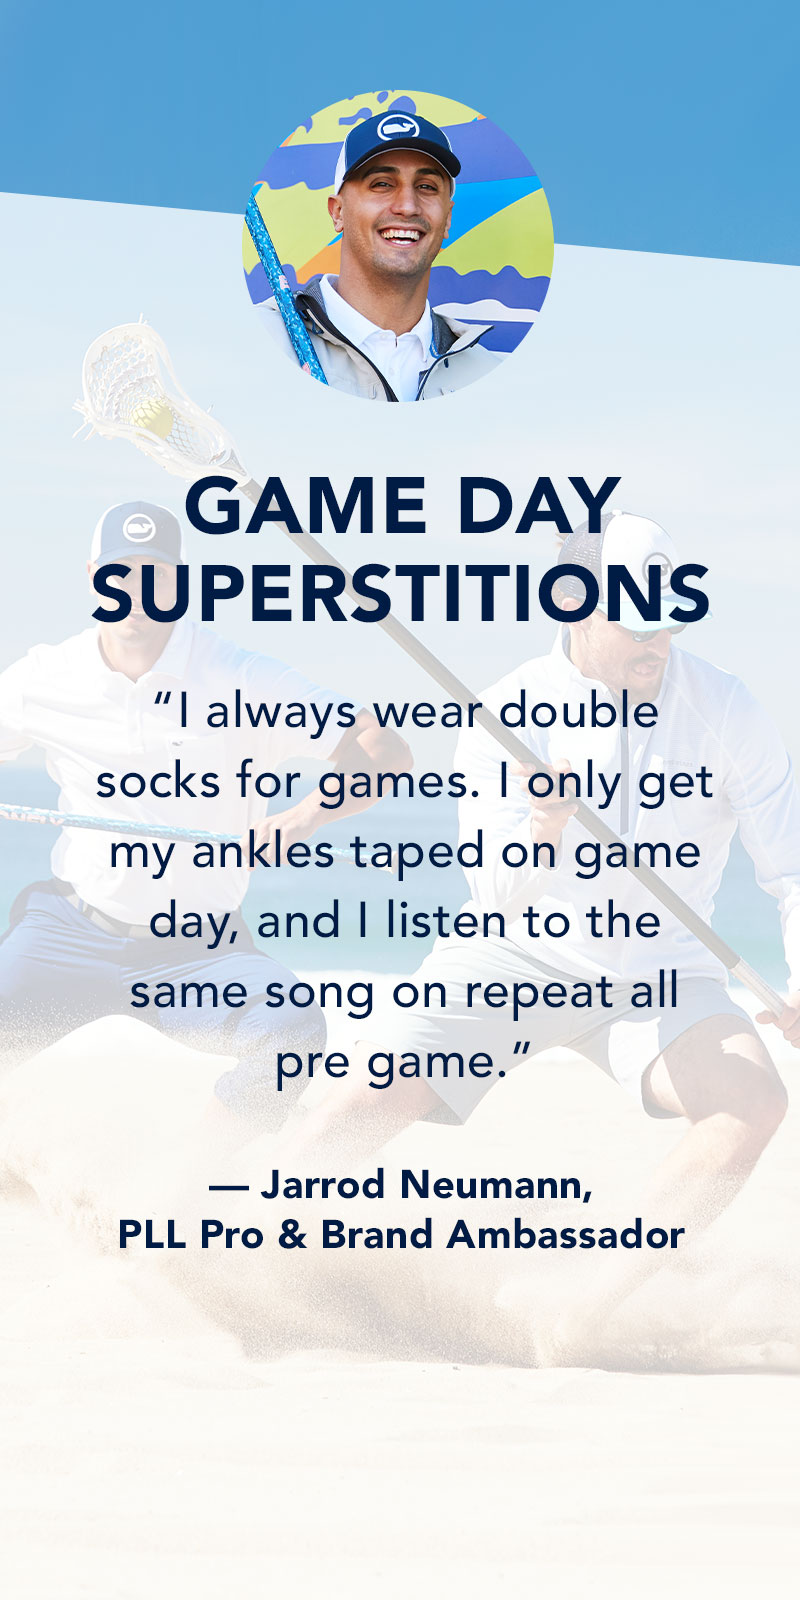 Game Day Superstitions: I always wear double socks for games. I only get my ankles taped on game day, and I listen to the same song on repeat all pre game. Jarrod Neumann - PLL Pro & Brand Ambassador